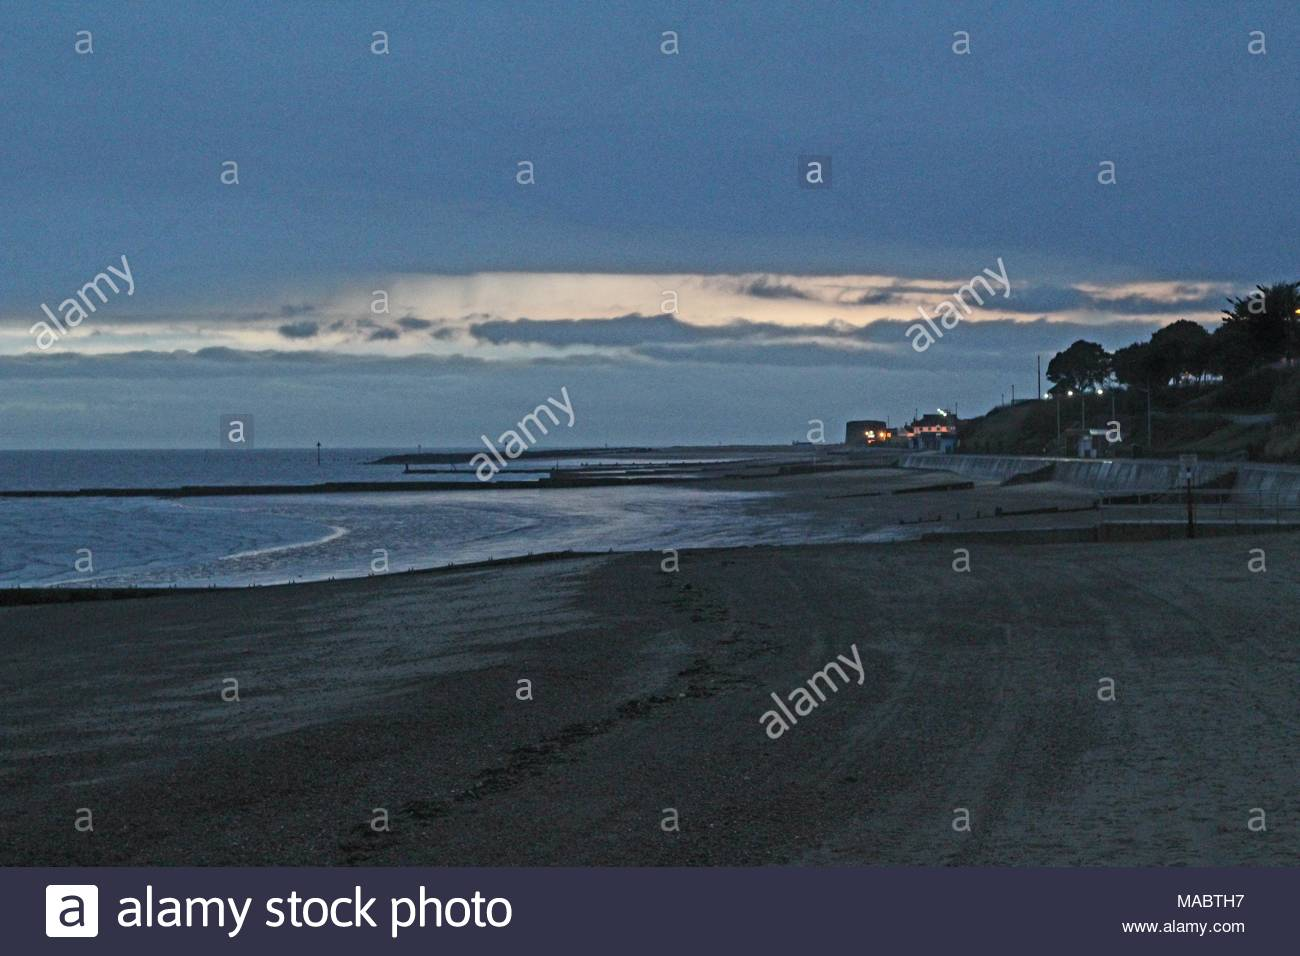 Beachside at Clacton on sea, Essex before dusk, Spring 2018. Space for copy. - Stock Image